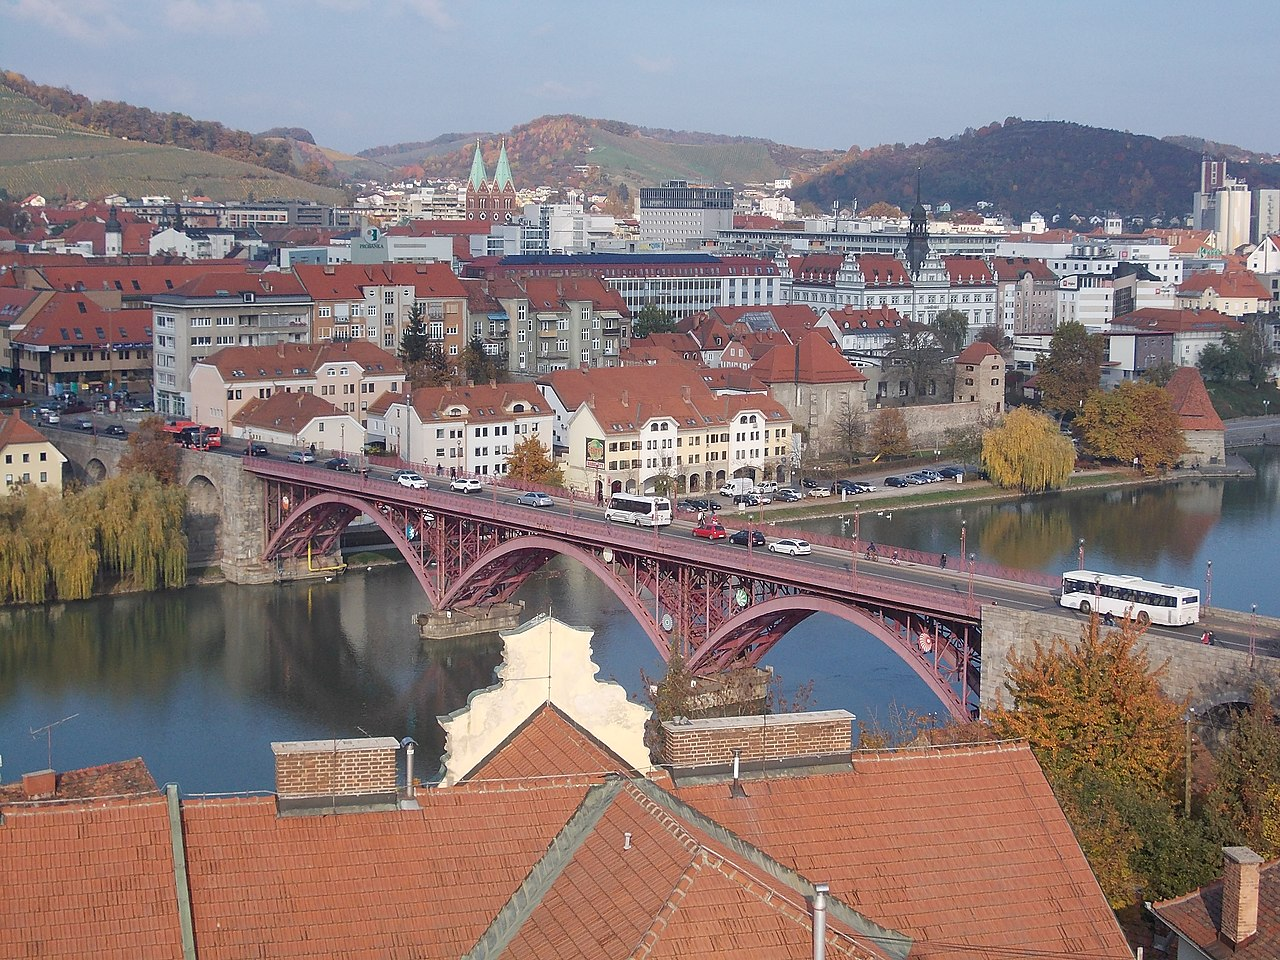 Maribor's Centre with Old Bridge along the Drava River